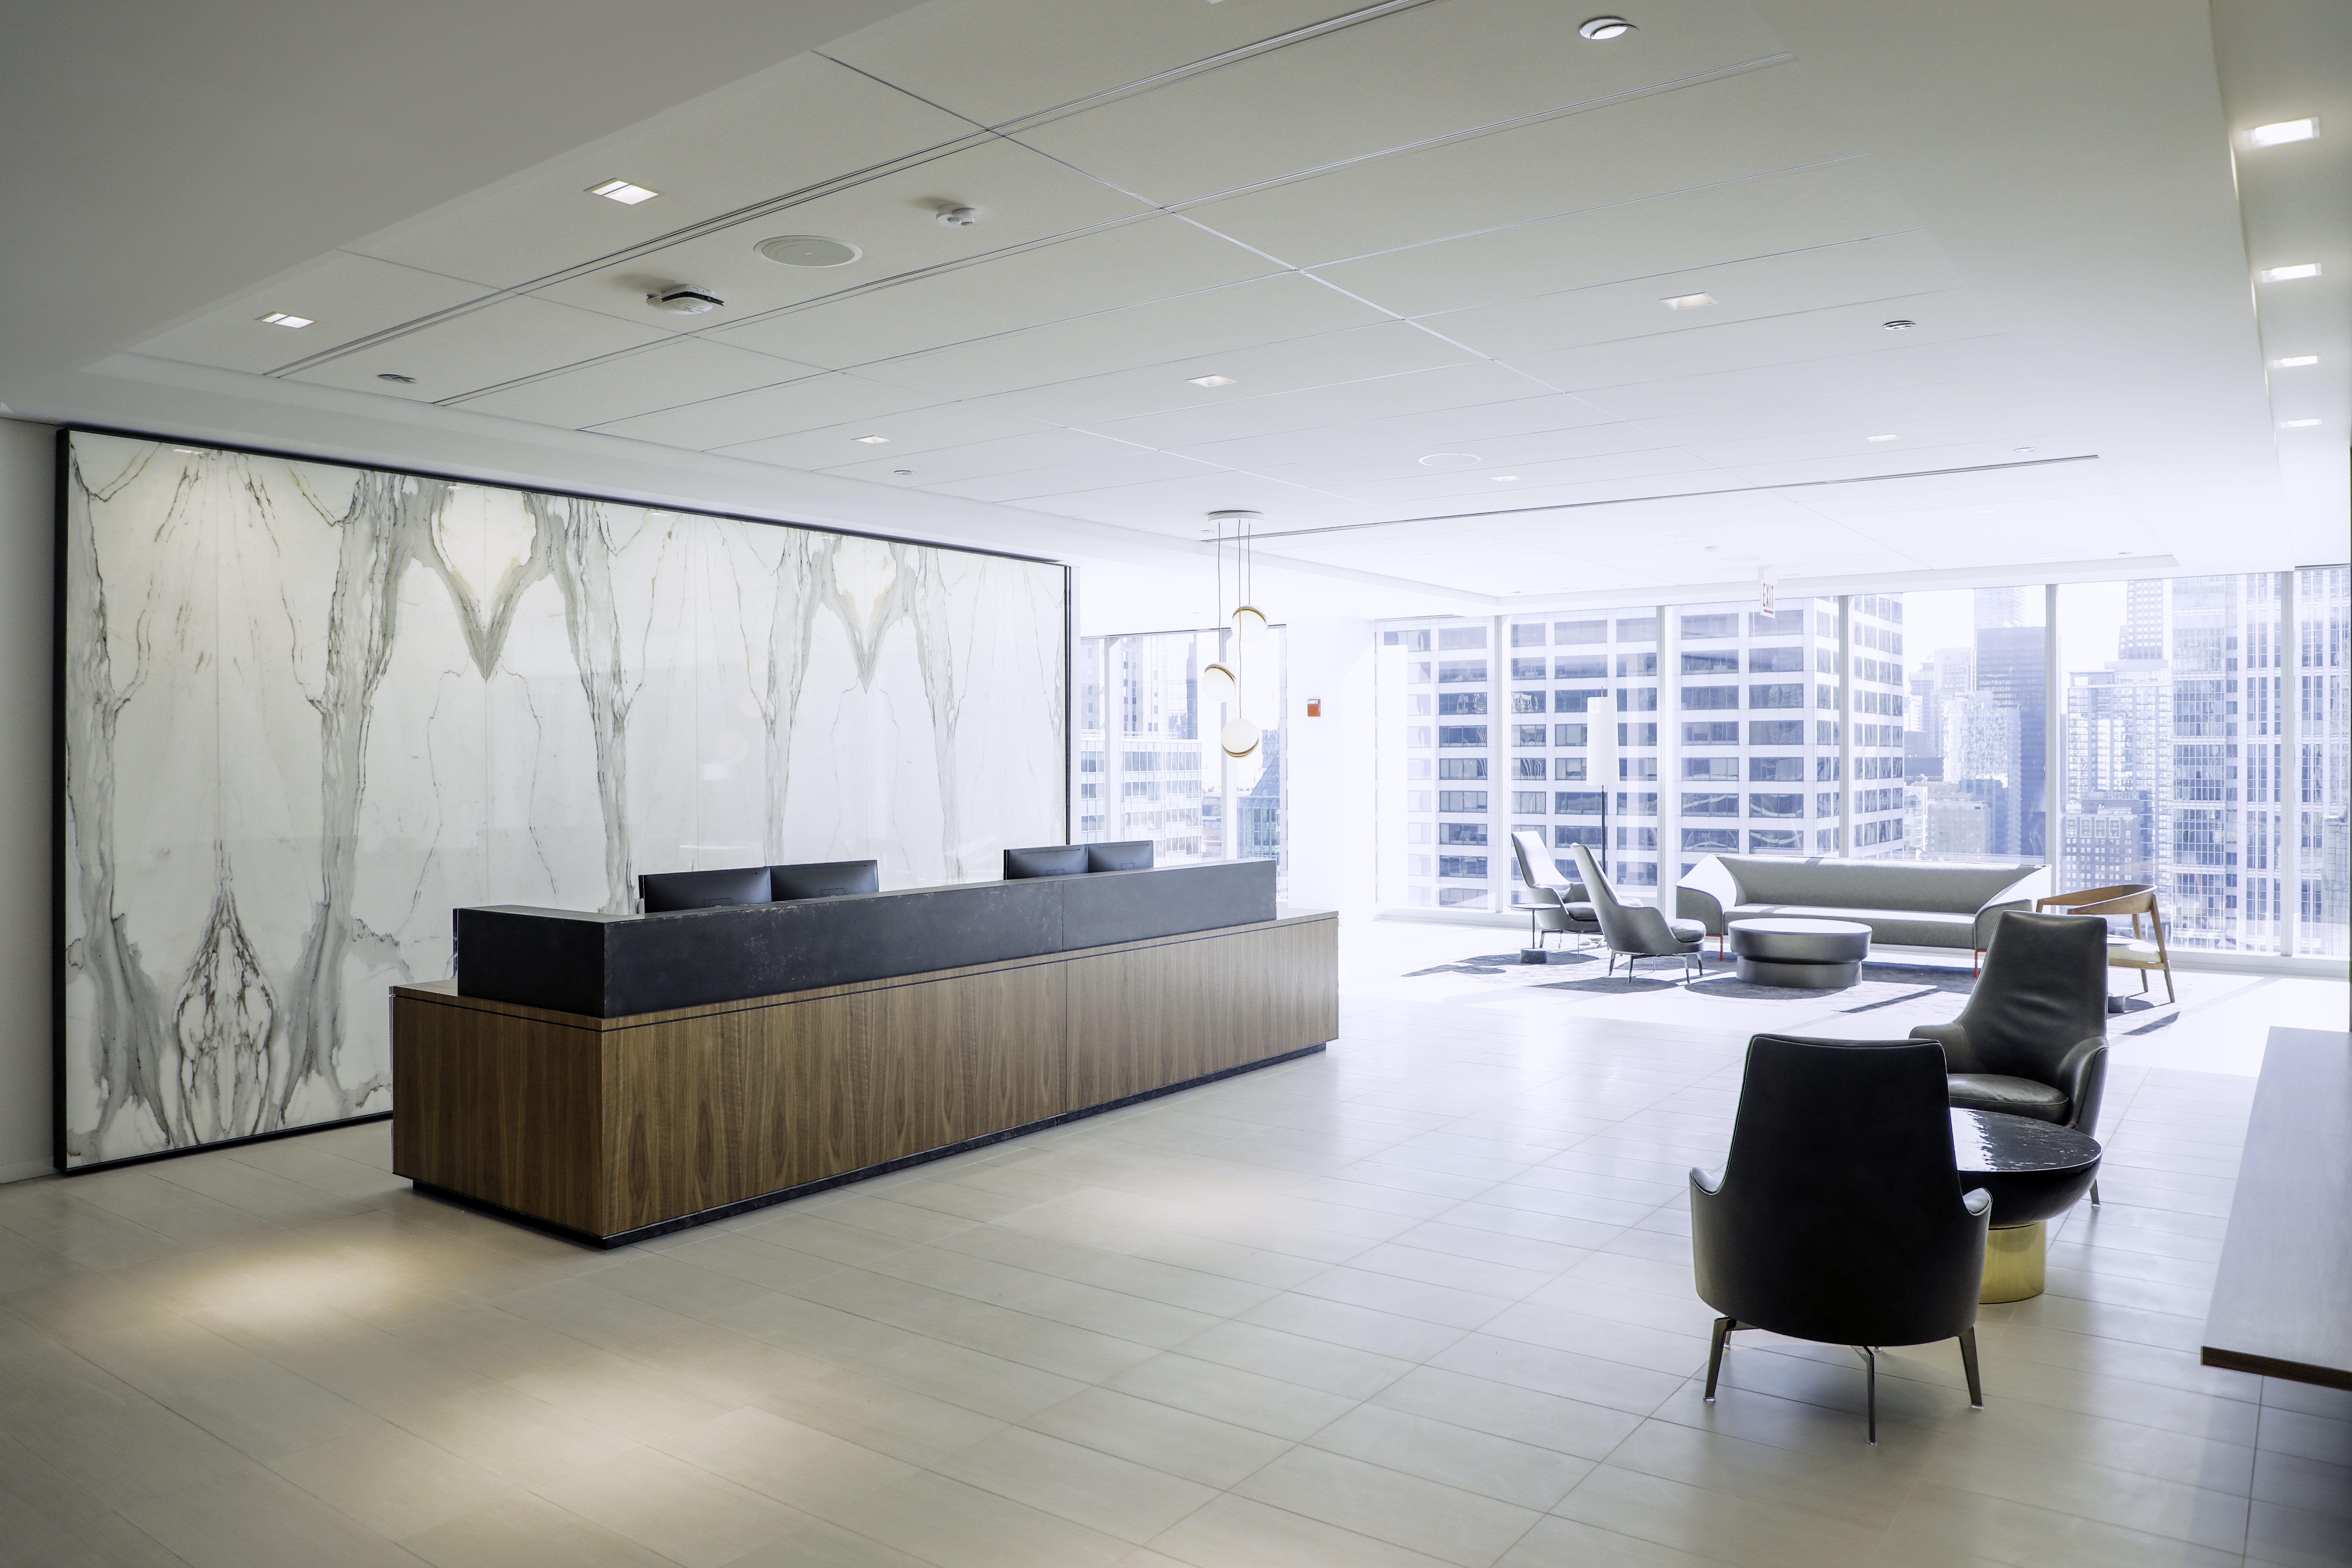 Skender Completes Interior Construction of National Law Firm's 121,000-Square-Foot Headquarters in Chicago